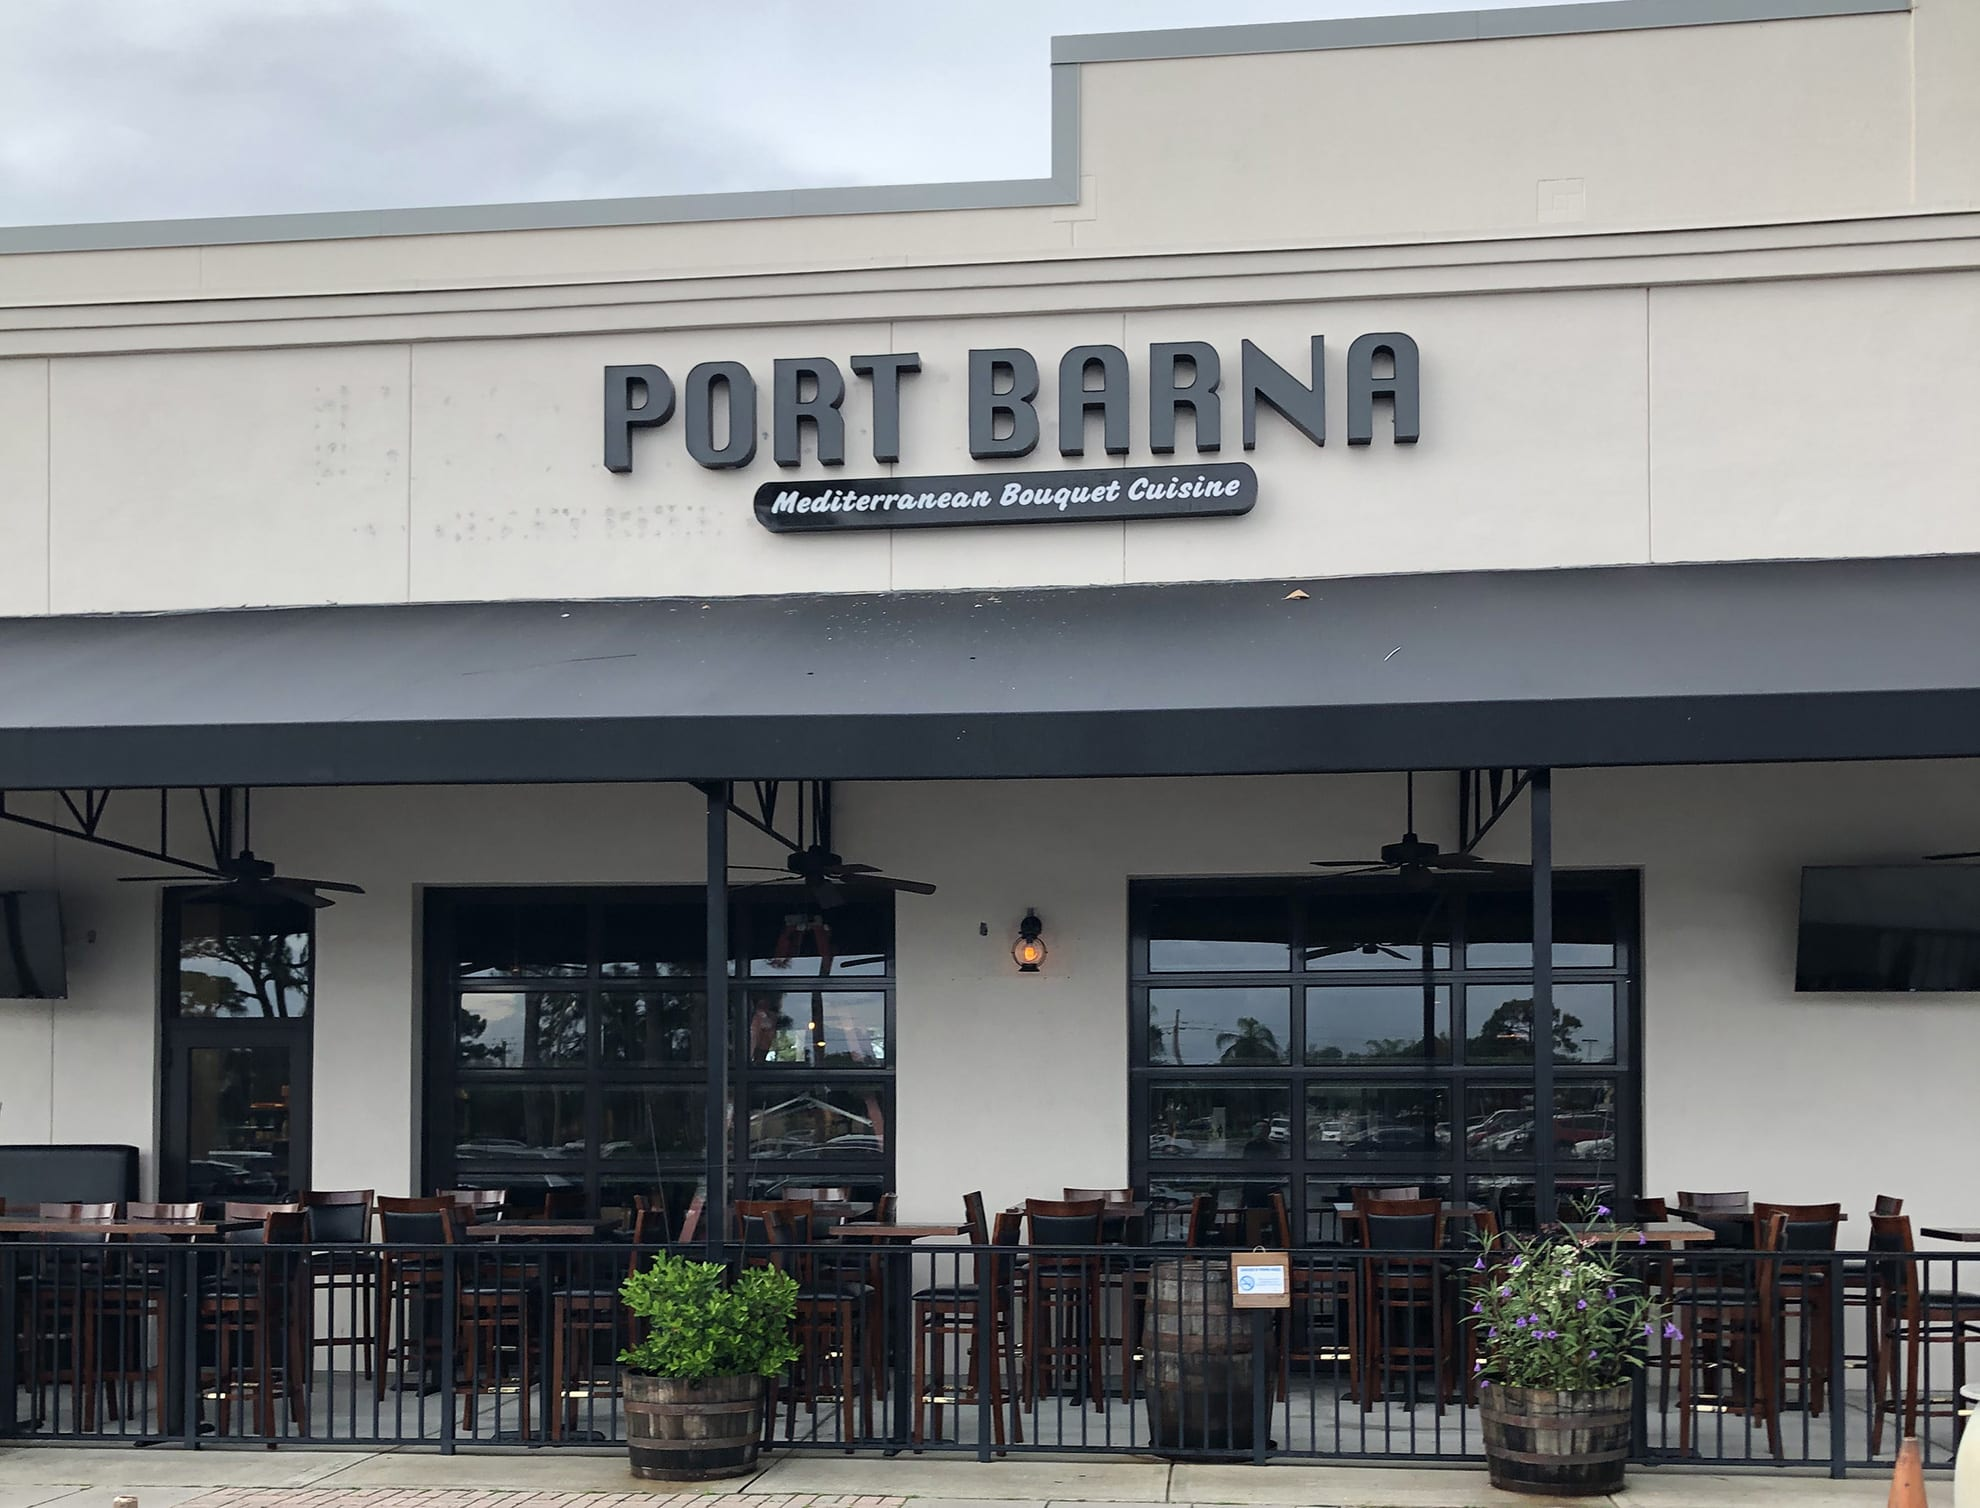 Port Barna Front with the Sign